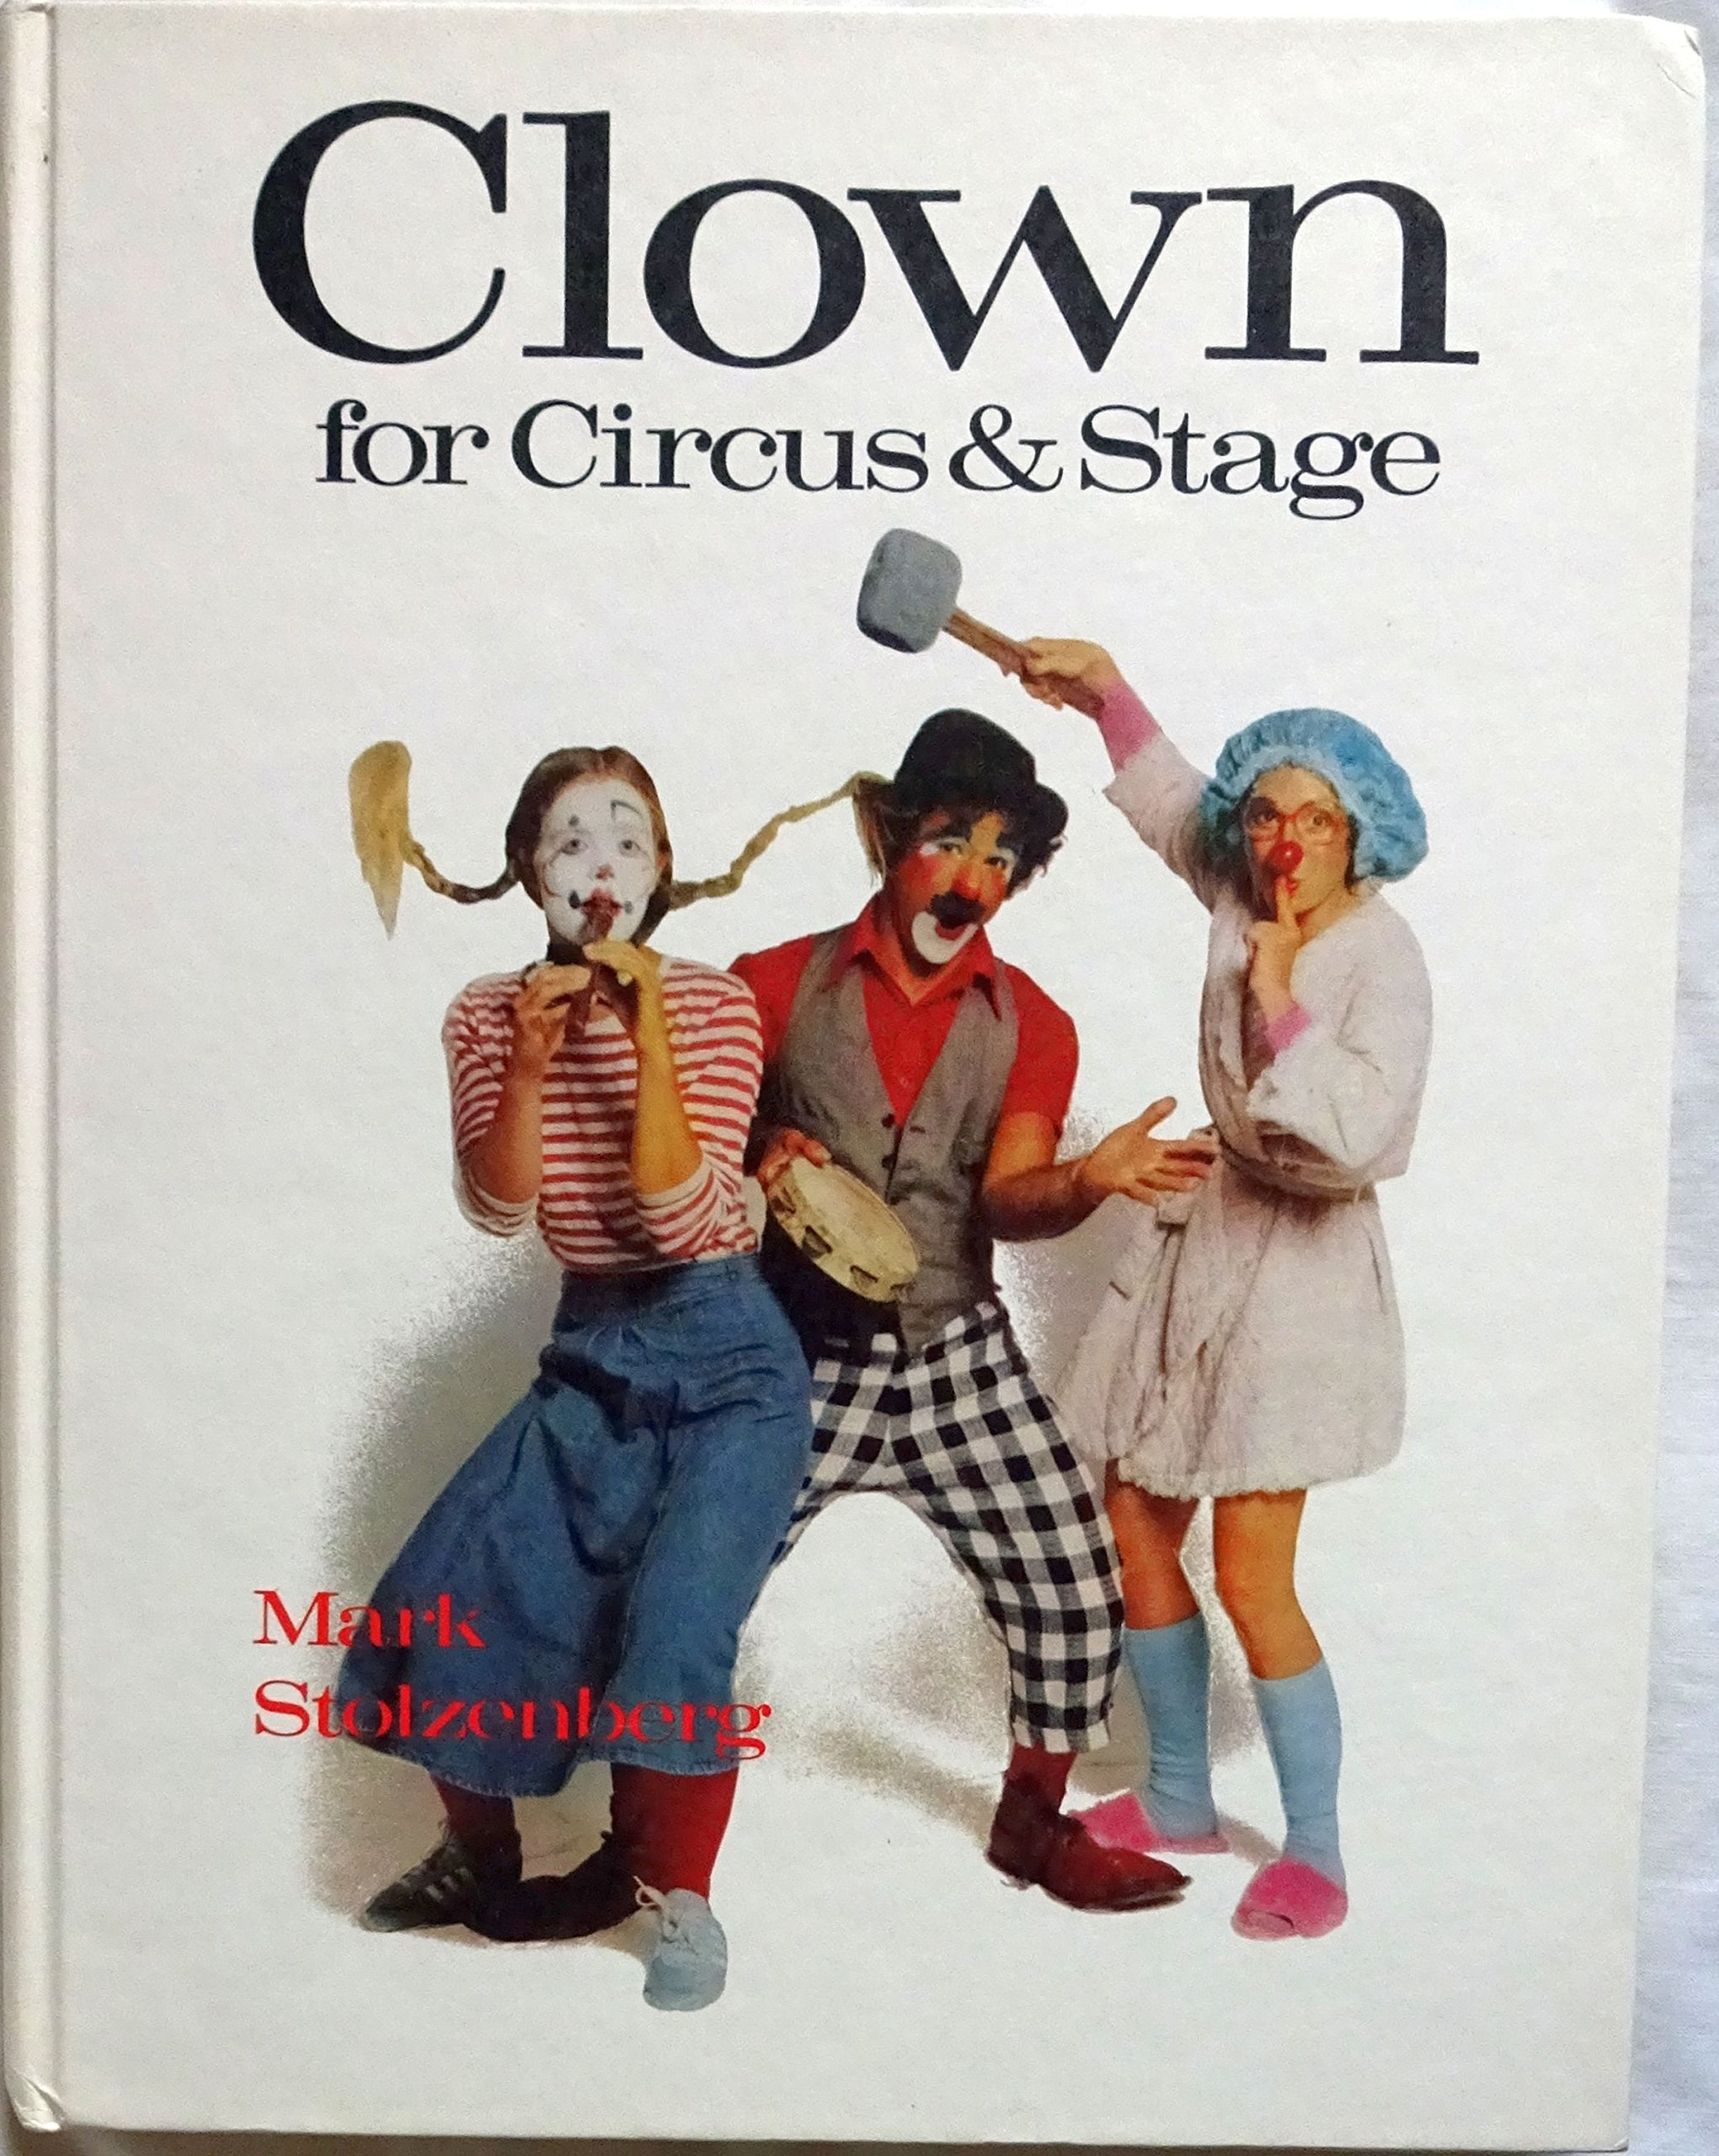 Clown For Circus And Stage: Mark Stolzenberg: 9780806970349: Amazon:  Books